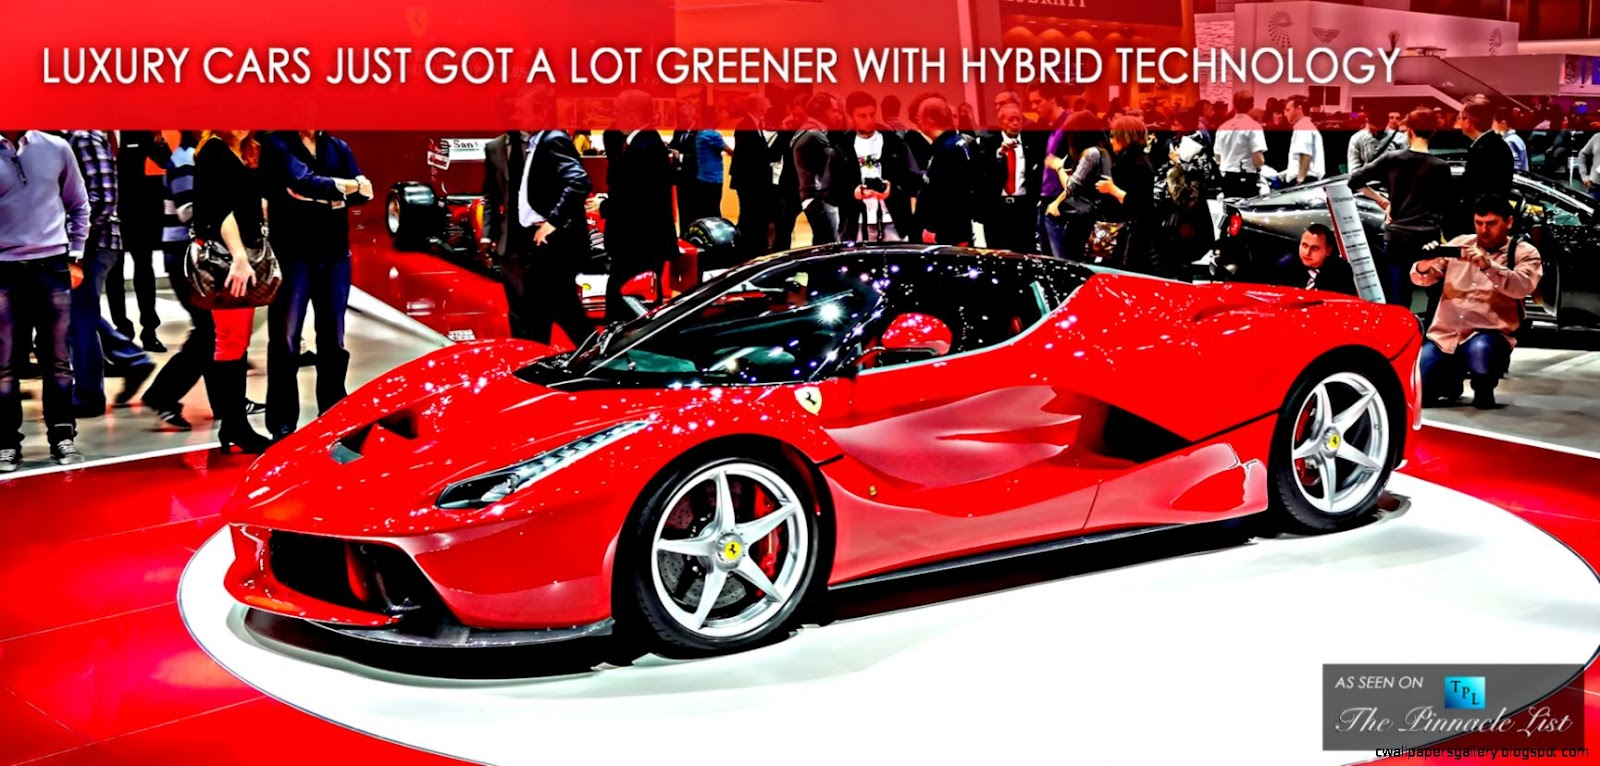 Luxury Cars Just Got a Lot Greener with Hybrid Technology at the